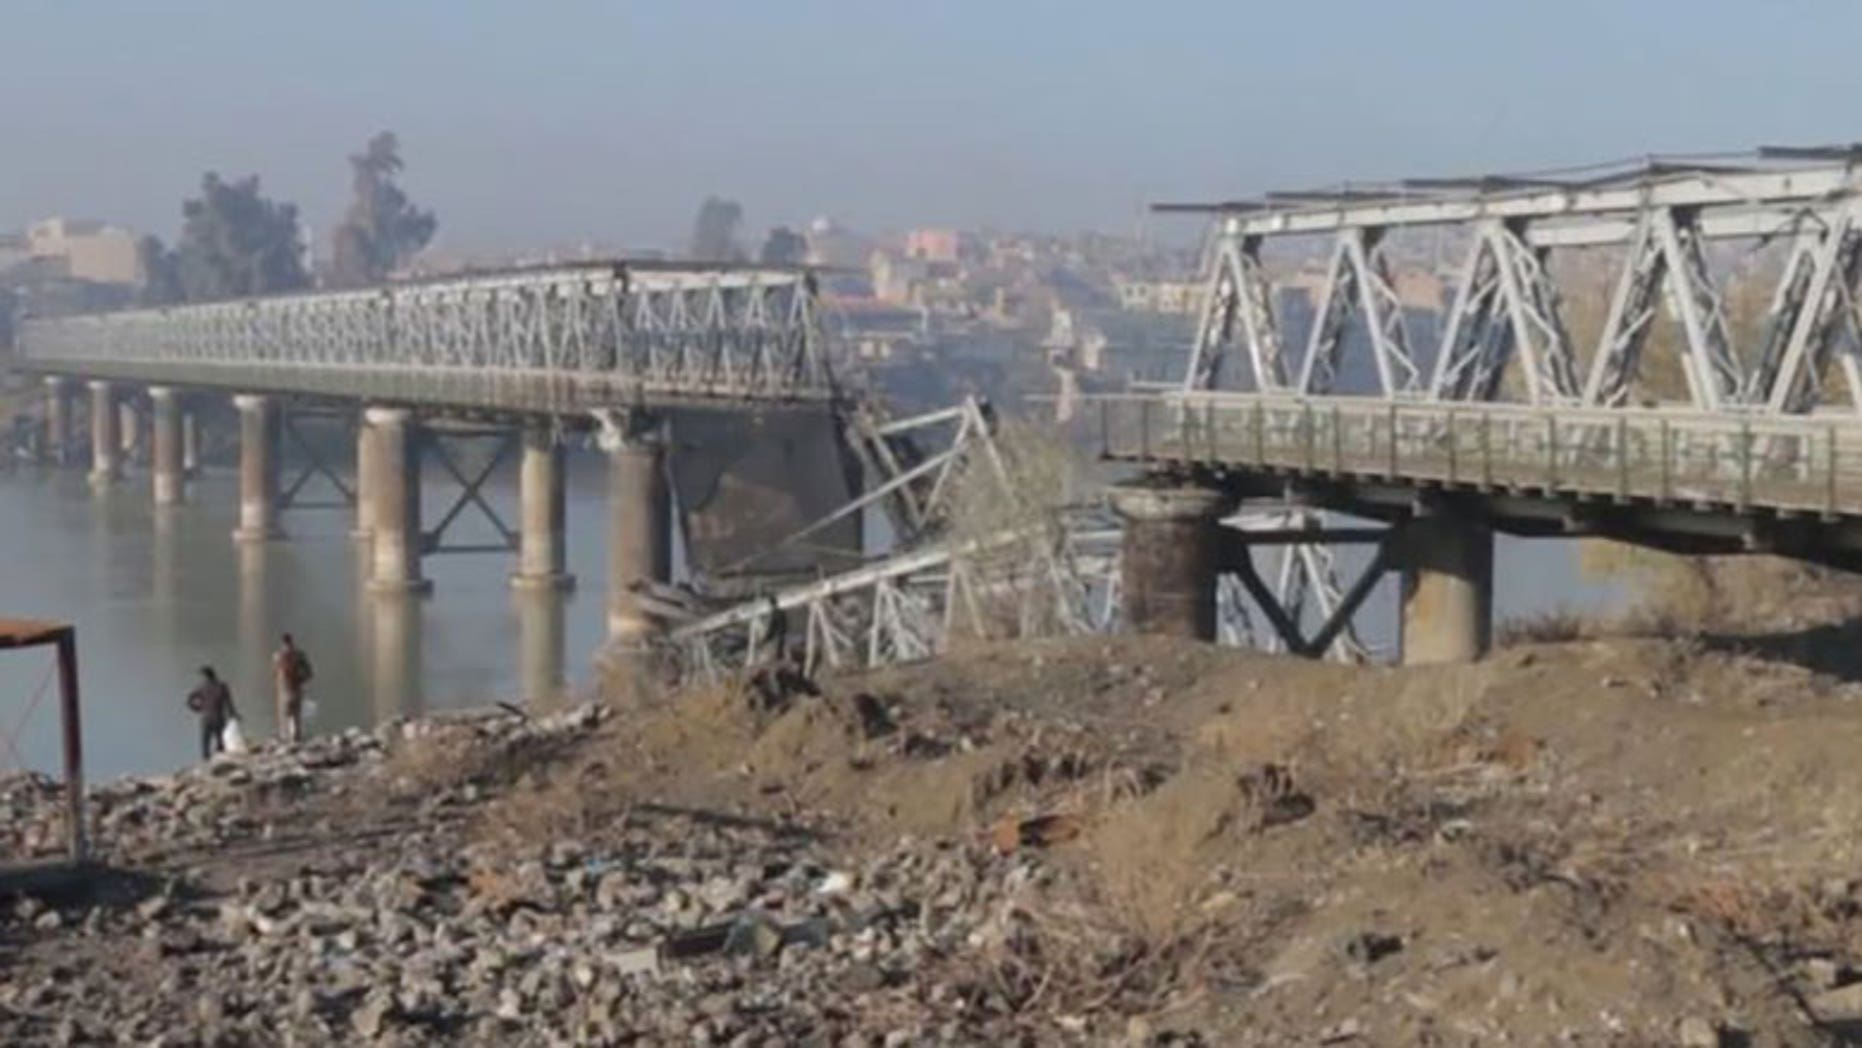 Images from the terror network's media agency show what remains of the Old Bridge.